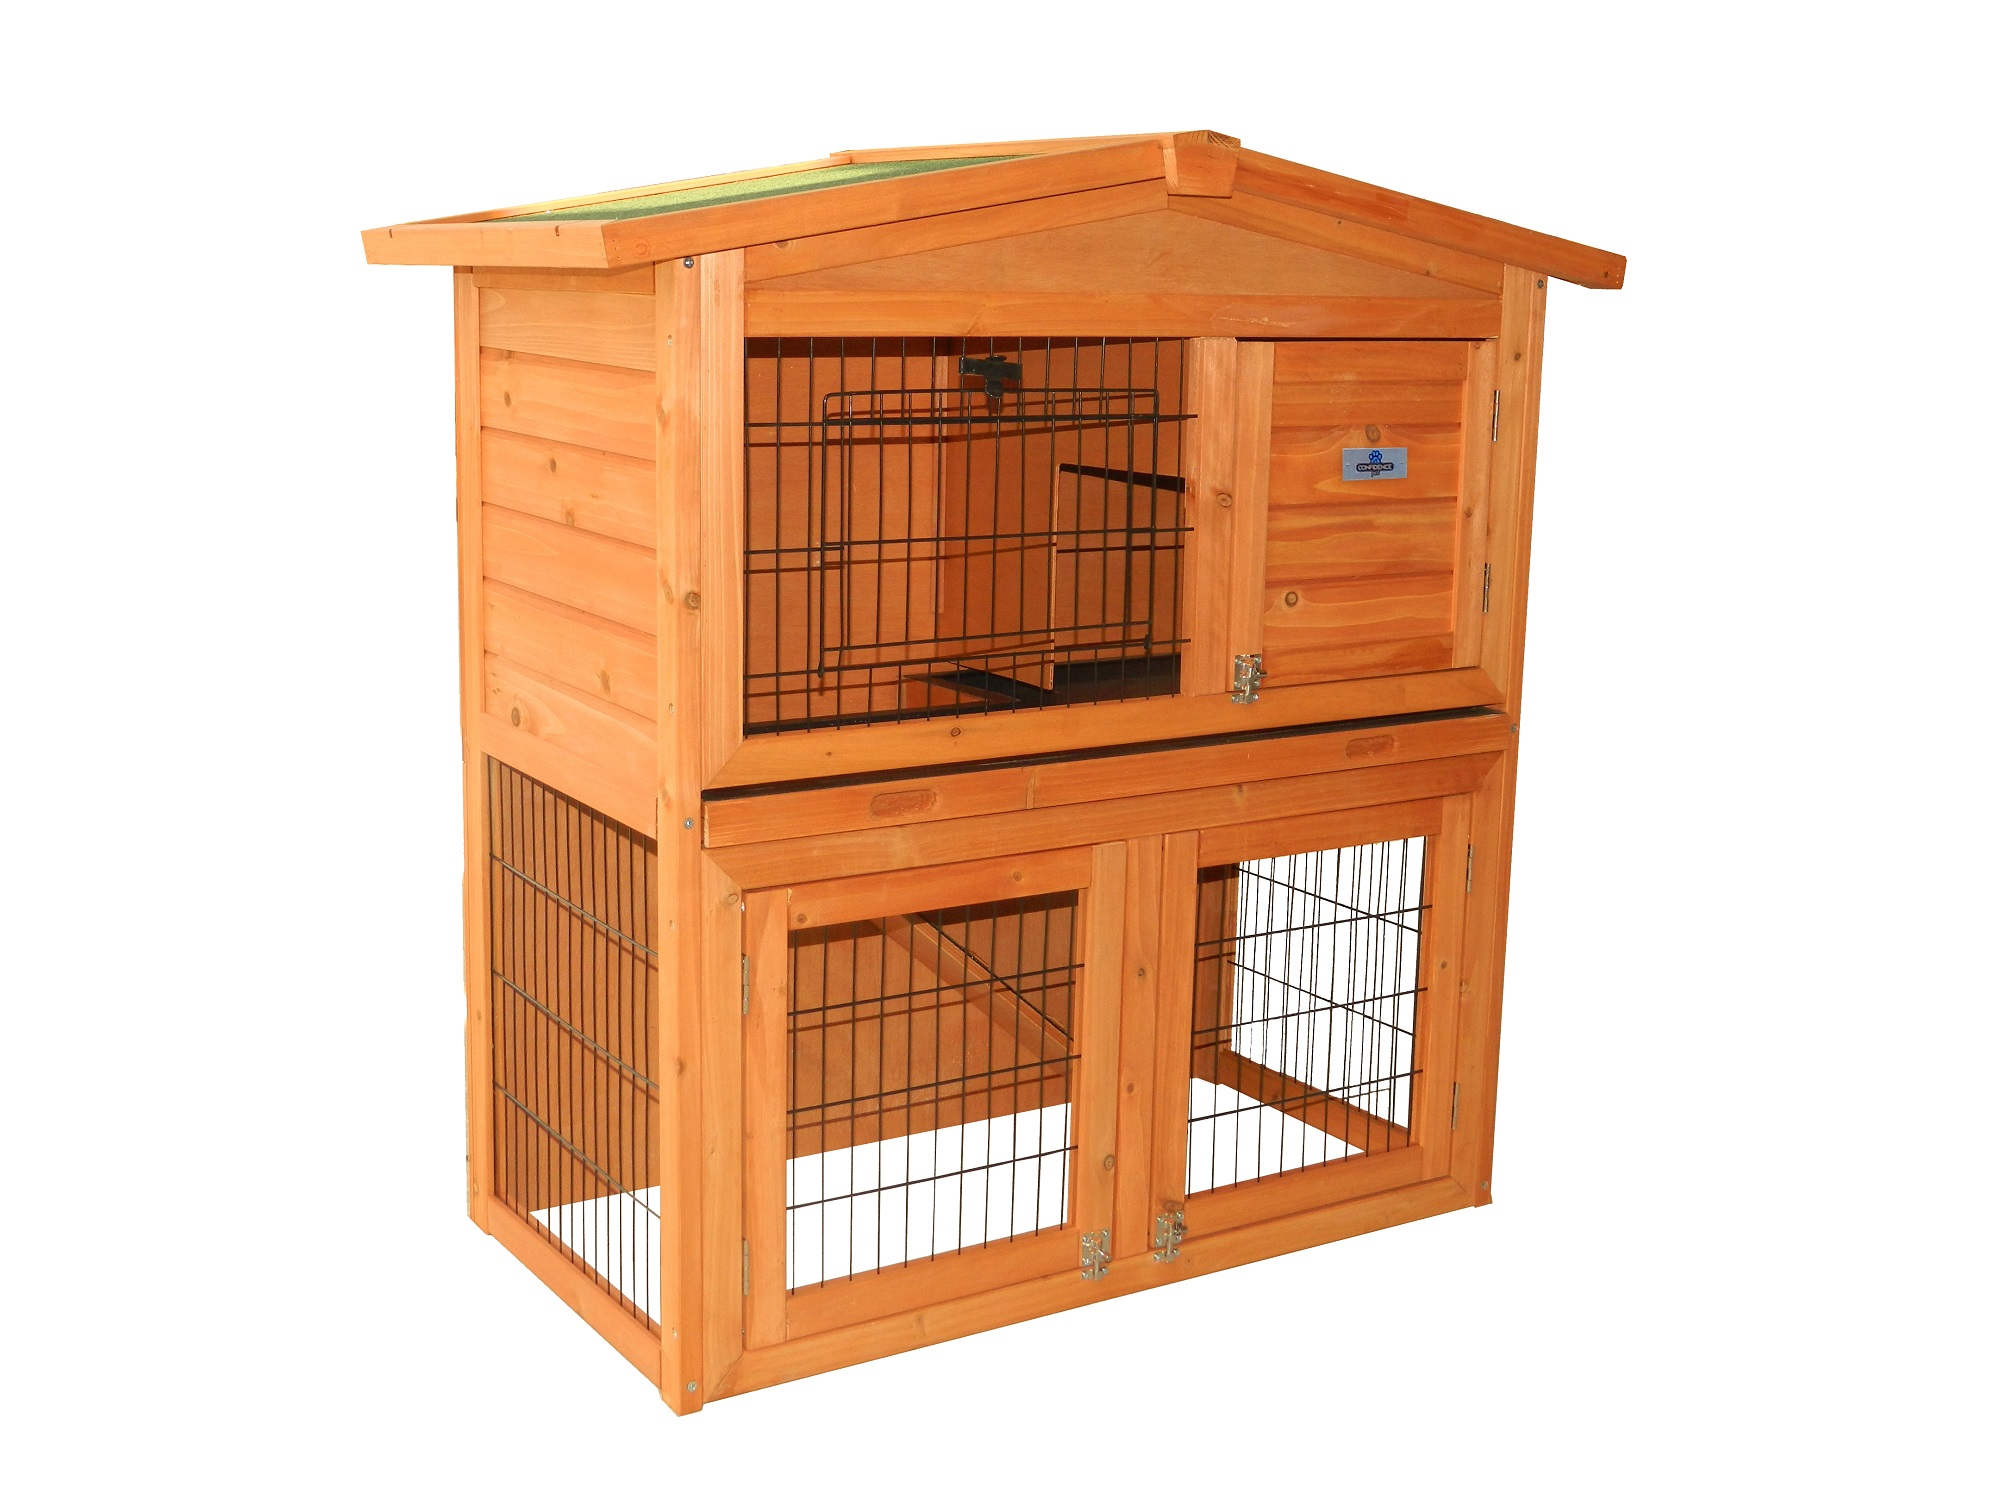 Confidence pet 40 rabbit hutch bunny guinea pig cage pen for What is a rabbit hutch